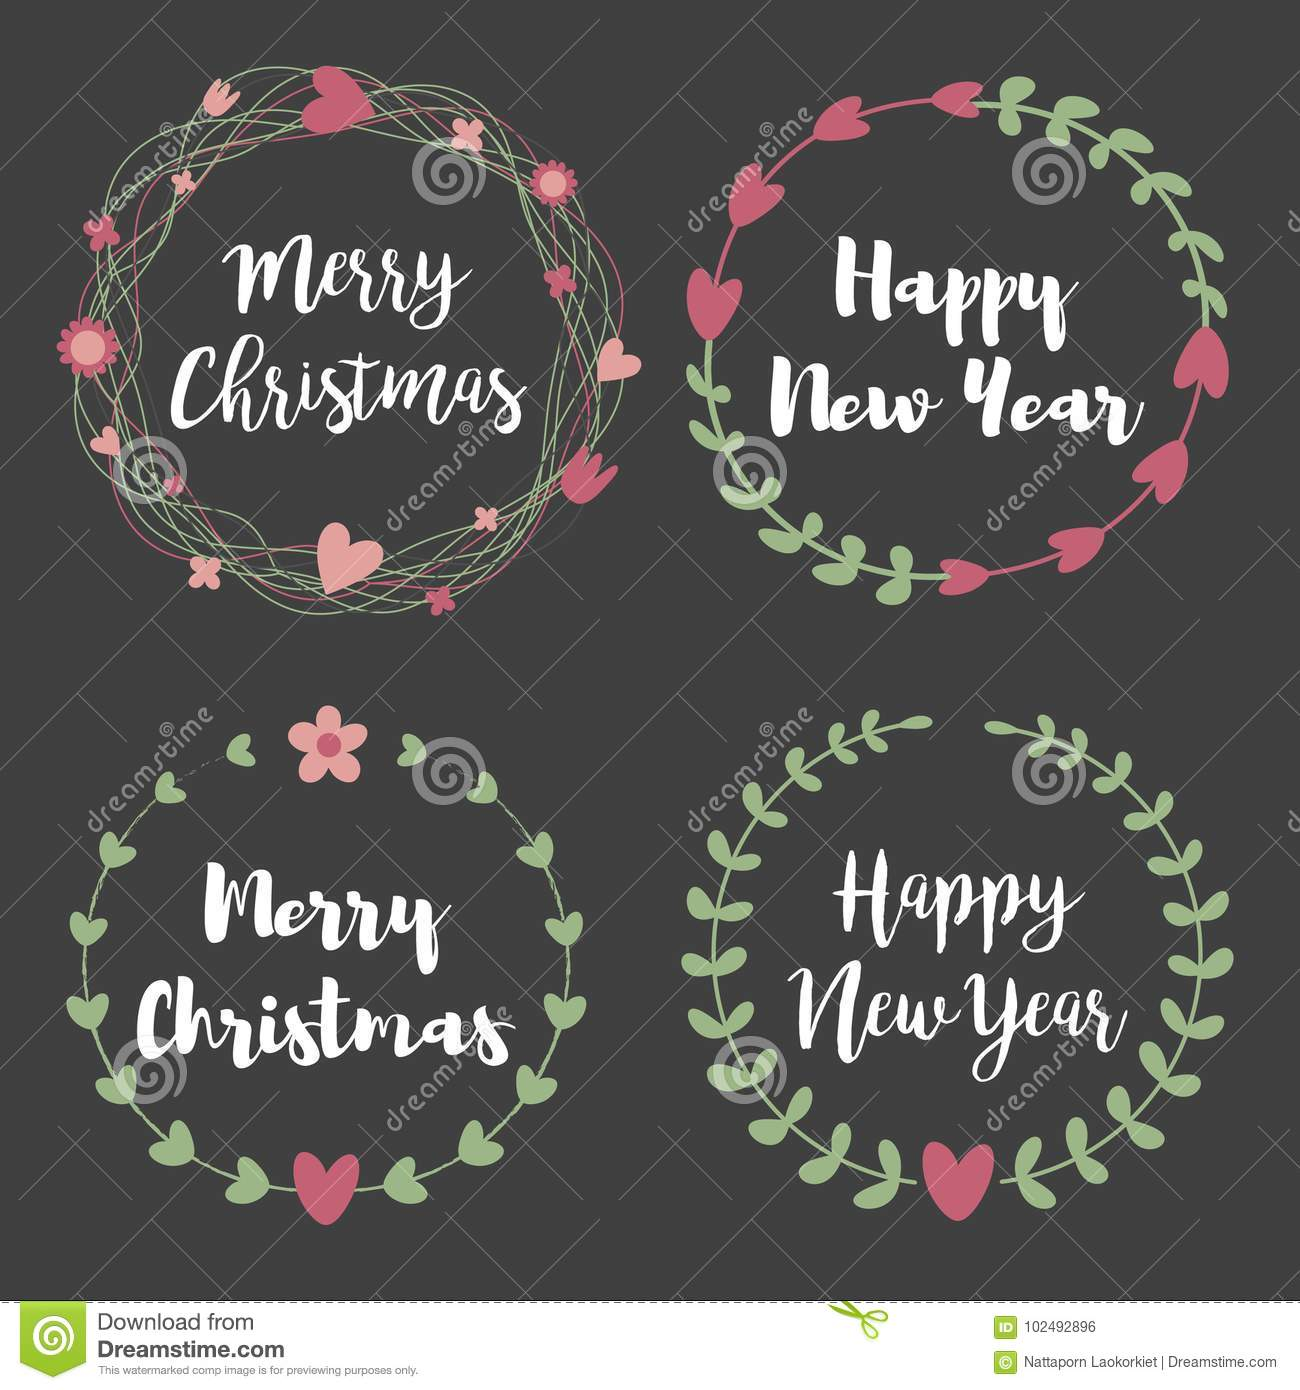 15+ Christmas & New Year Labels & Badges Design